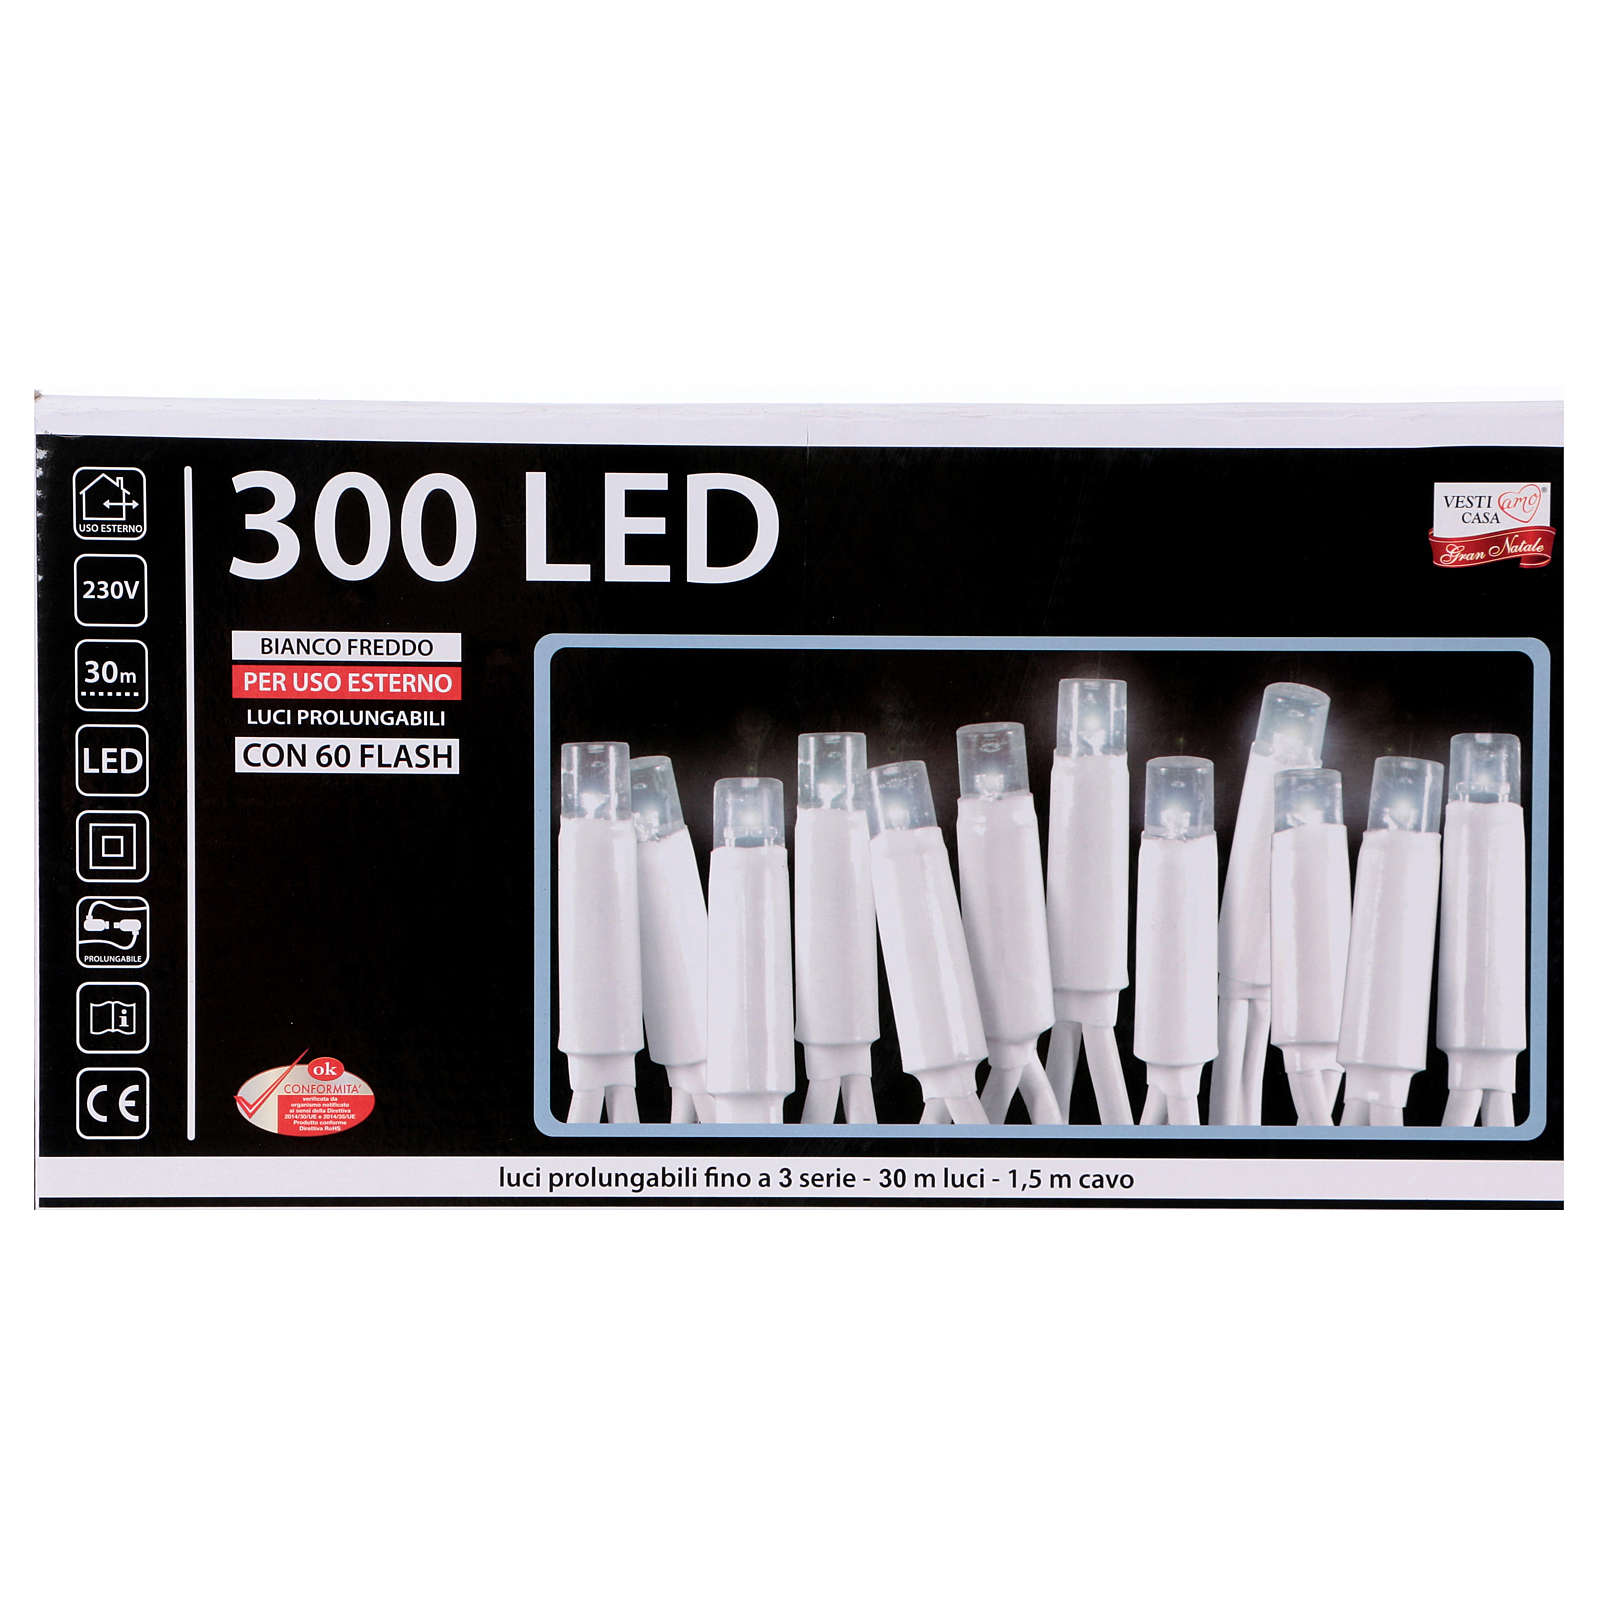 Fairy lights 300 LED, cold white, for outdoor use 3